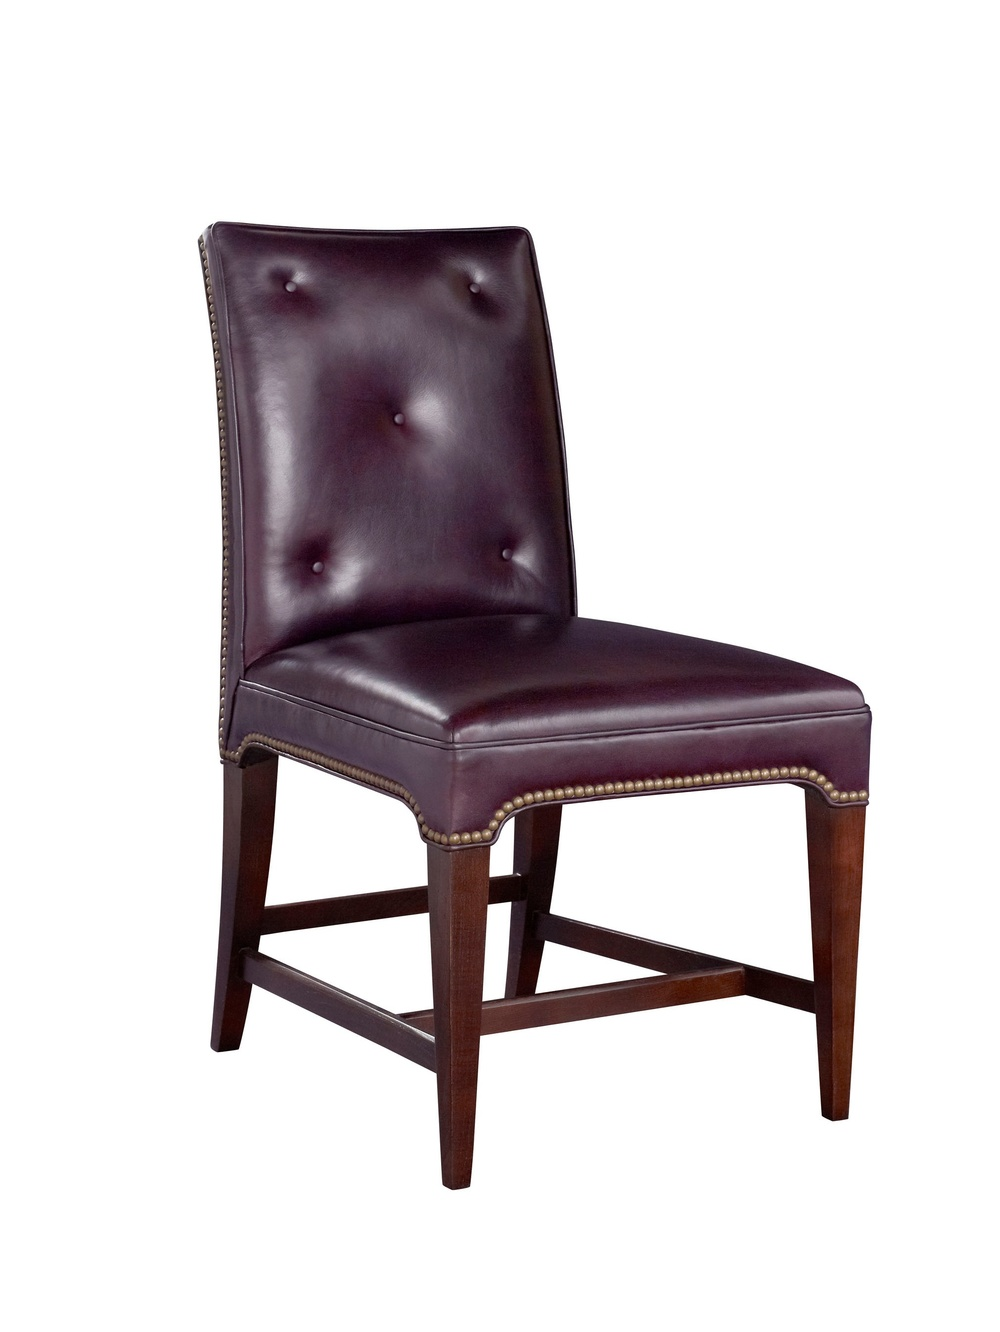 Hickory Chair - Claeys Side Chair